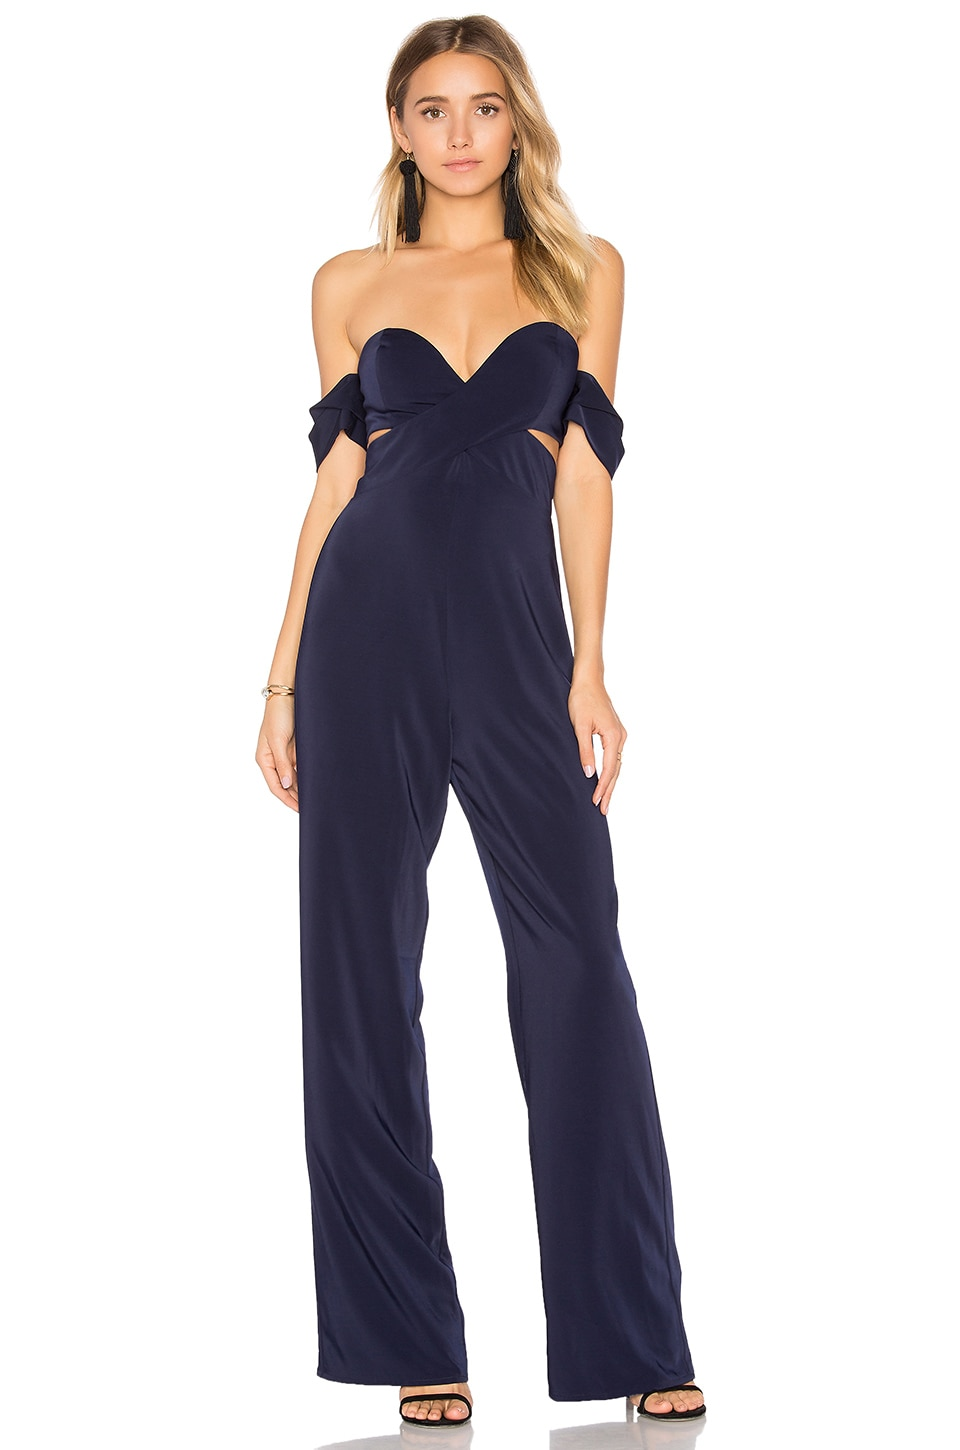 x REVOLVE Bianca Jumpsuit by House of Harlow 1960